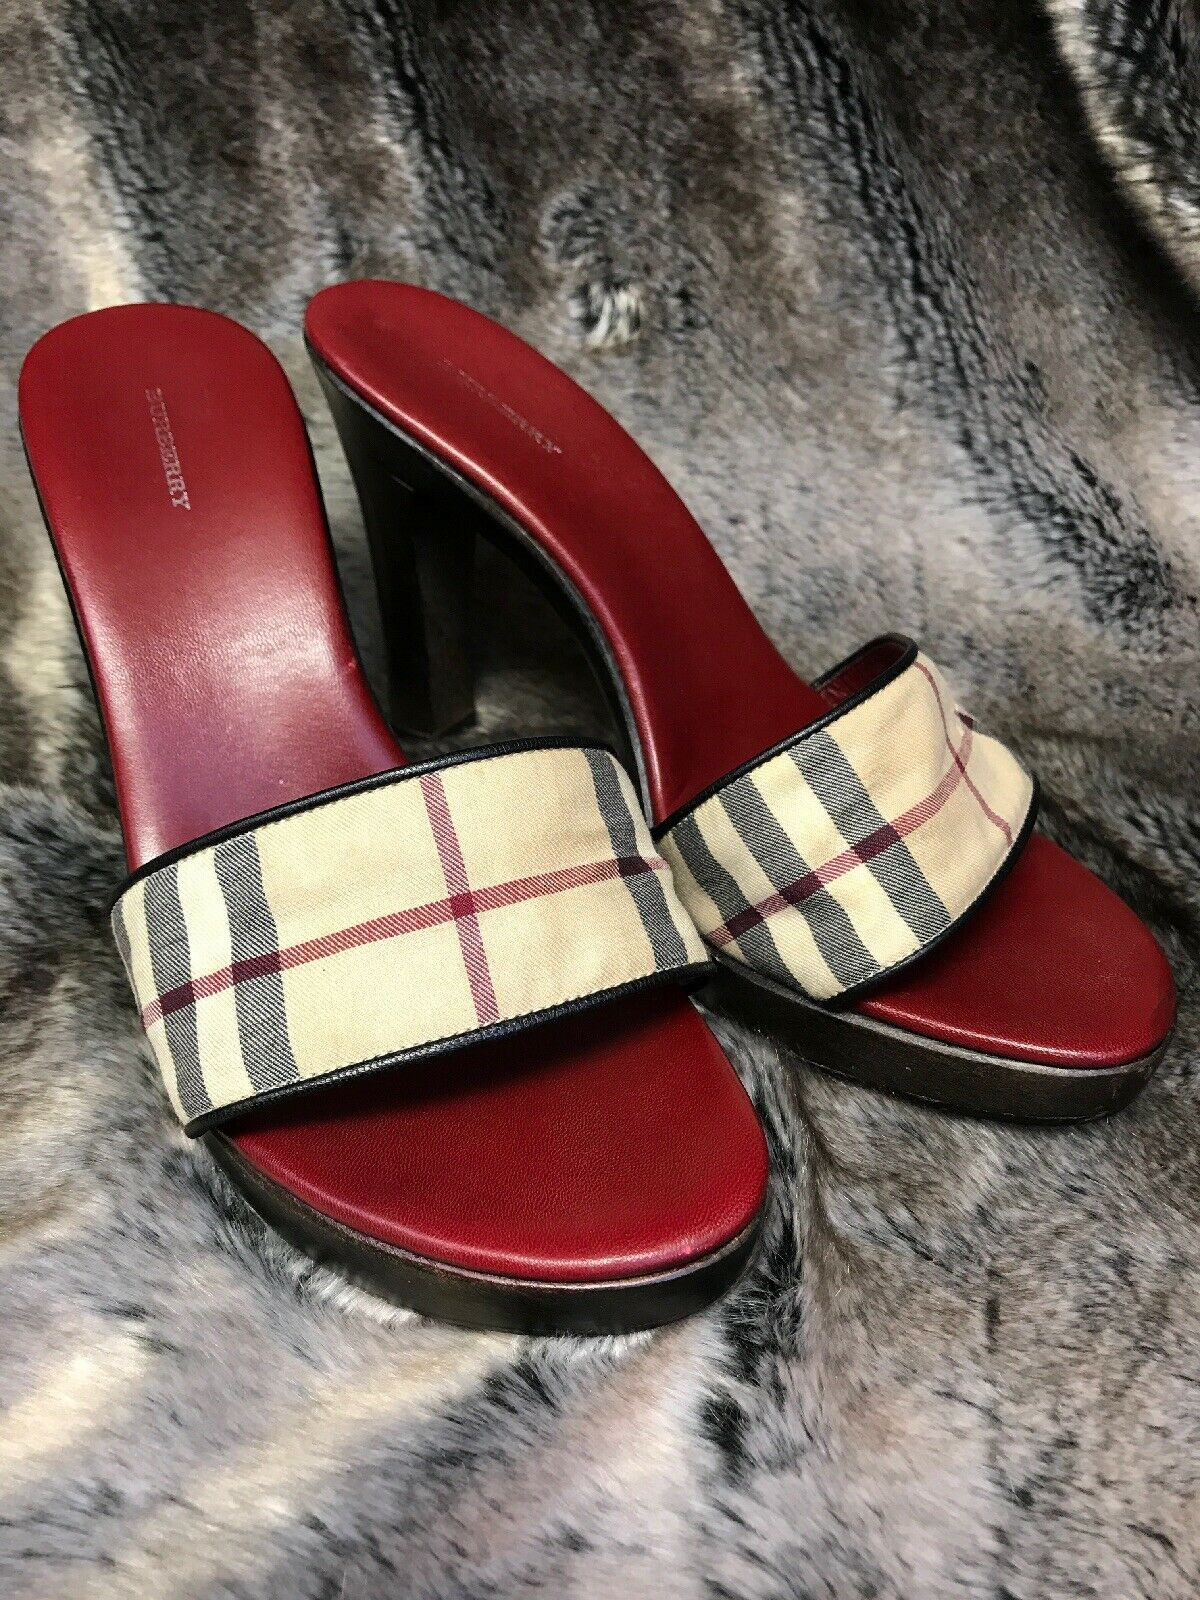 Burberry High Heeled  Slip -ons Tan w  rosso nero Check Pattern Gently Pre owned  qualità di prima classe